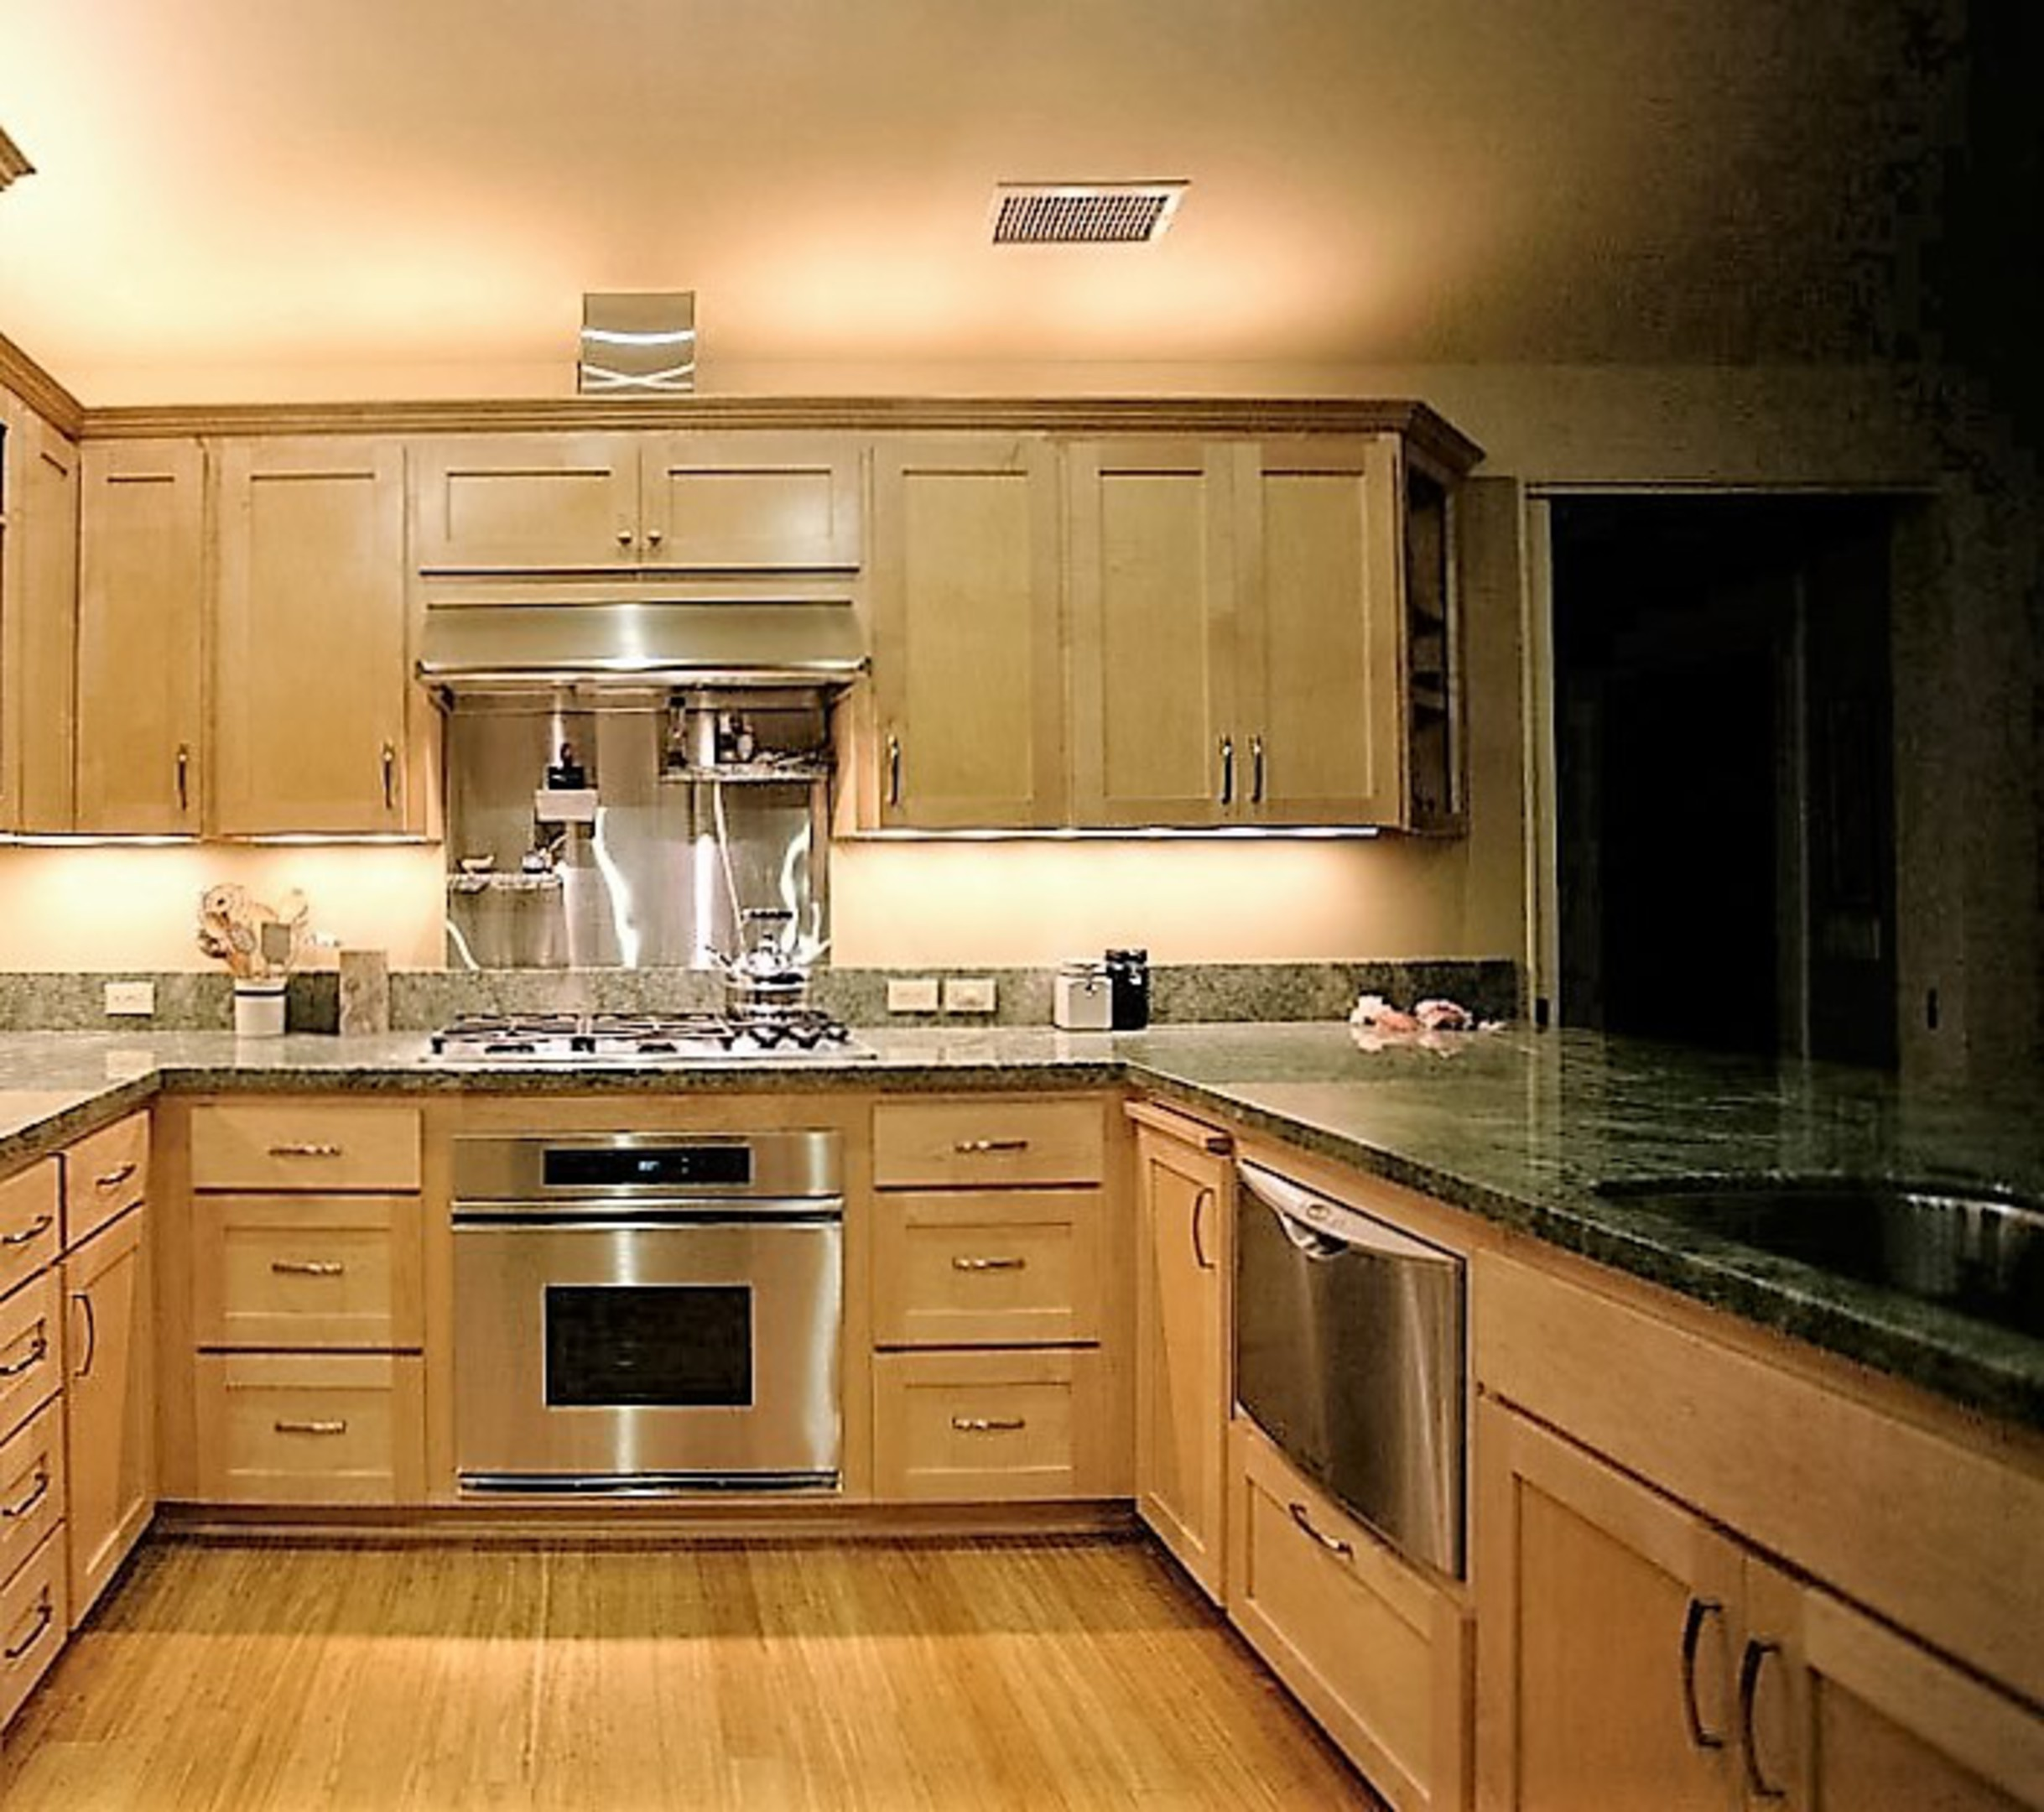 Space Above Kitchen Cabinets: Affordable Custom Cabinets